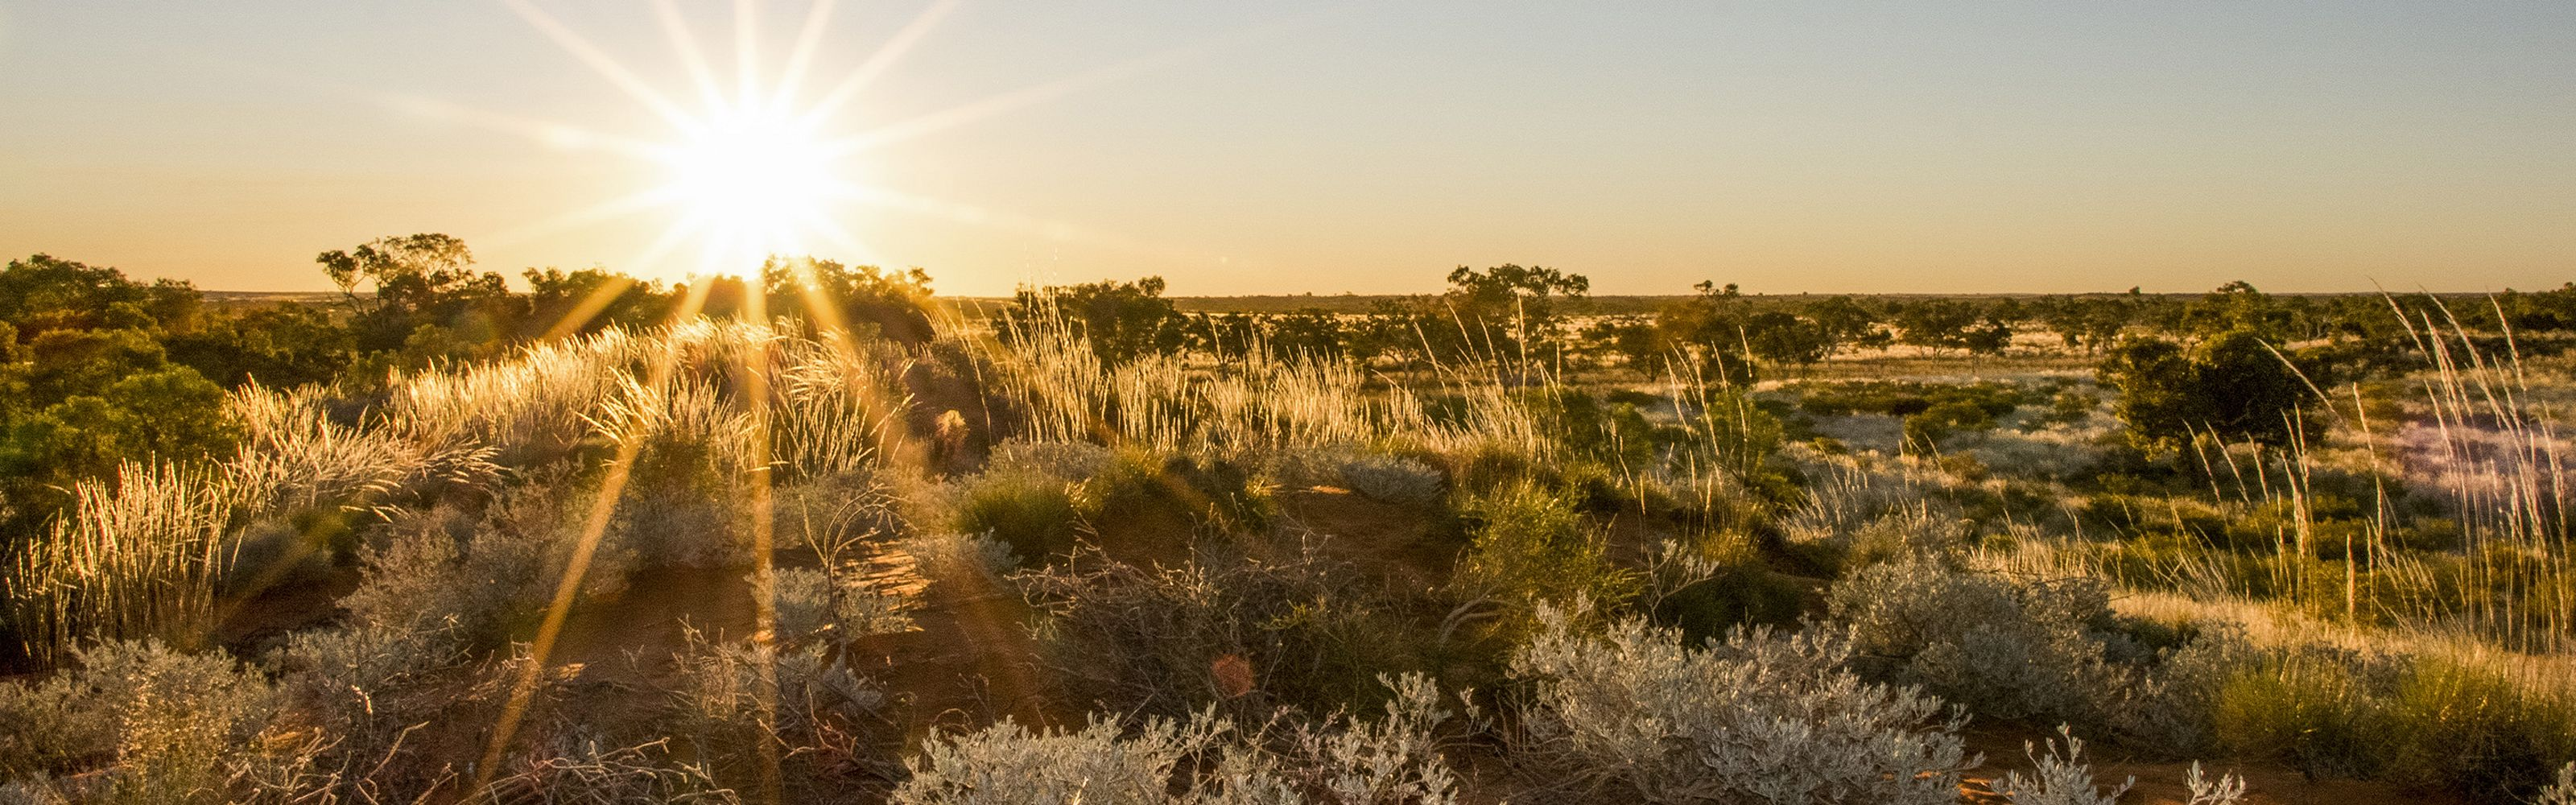 Sunset over the sand dunes on Martu country, Western Australia.